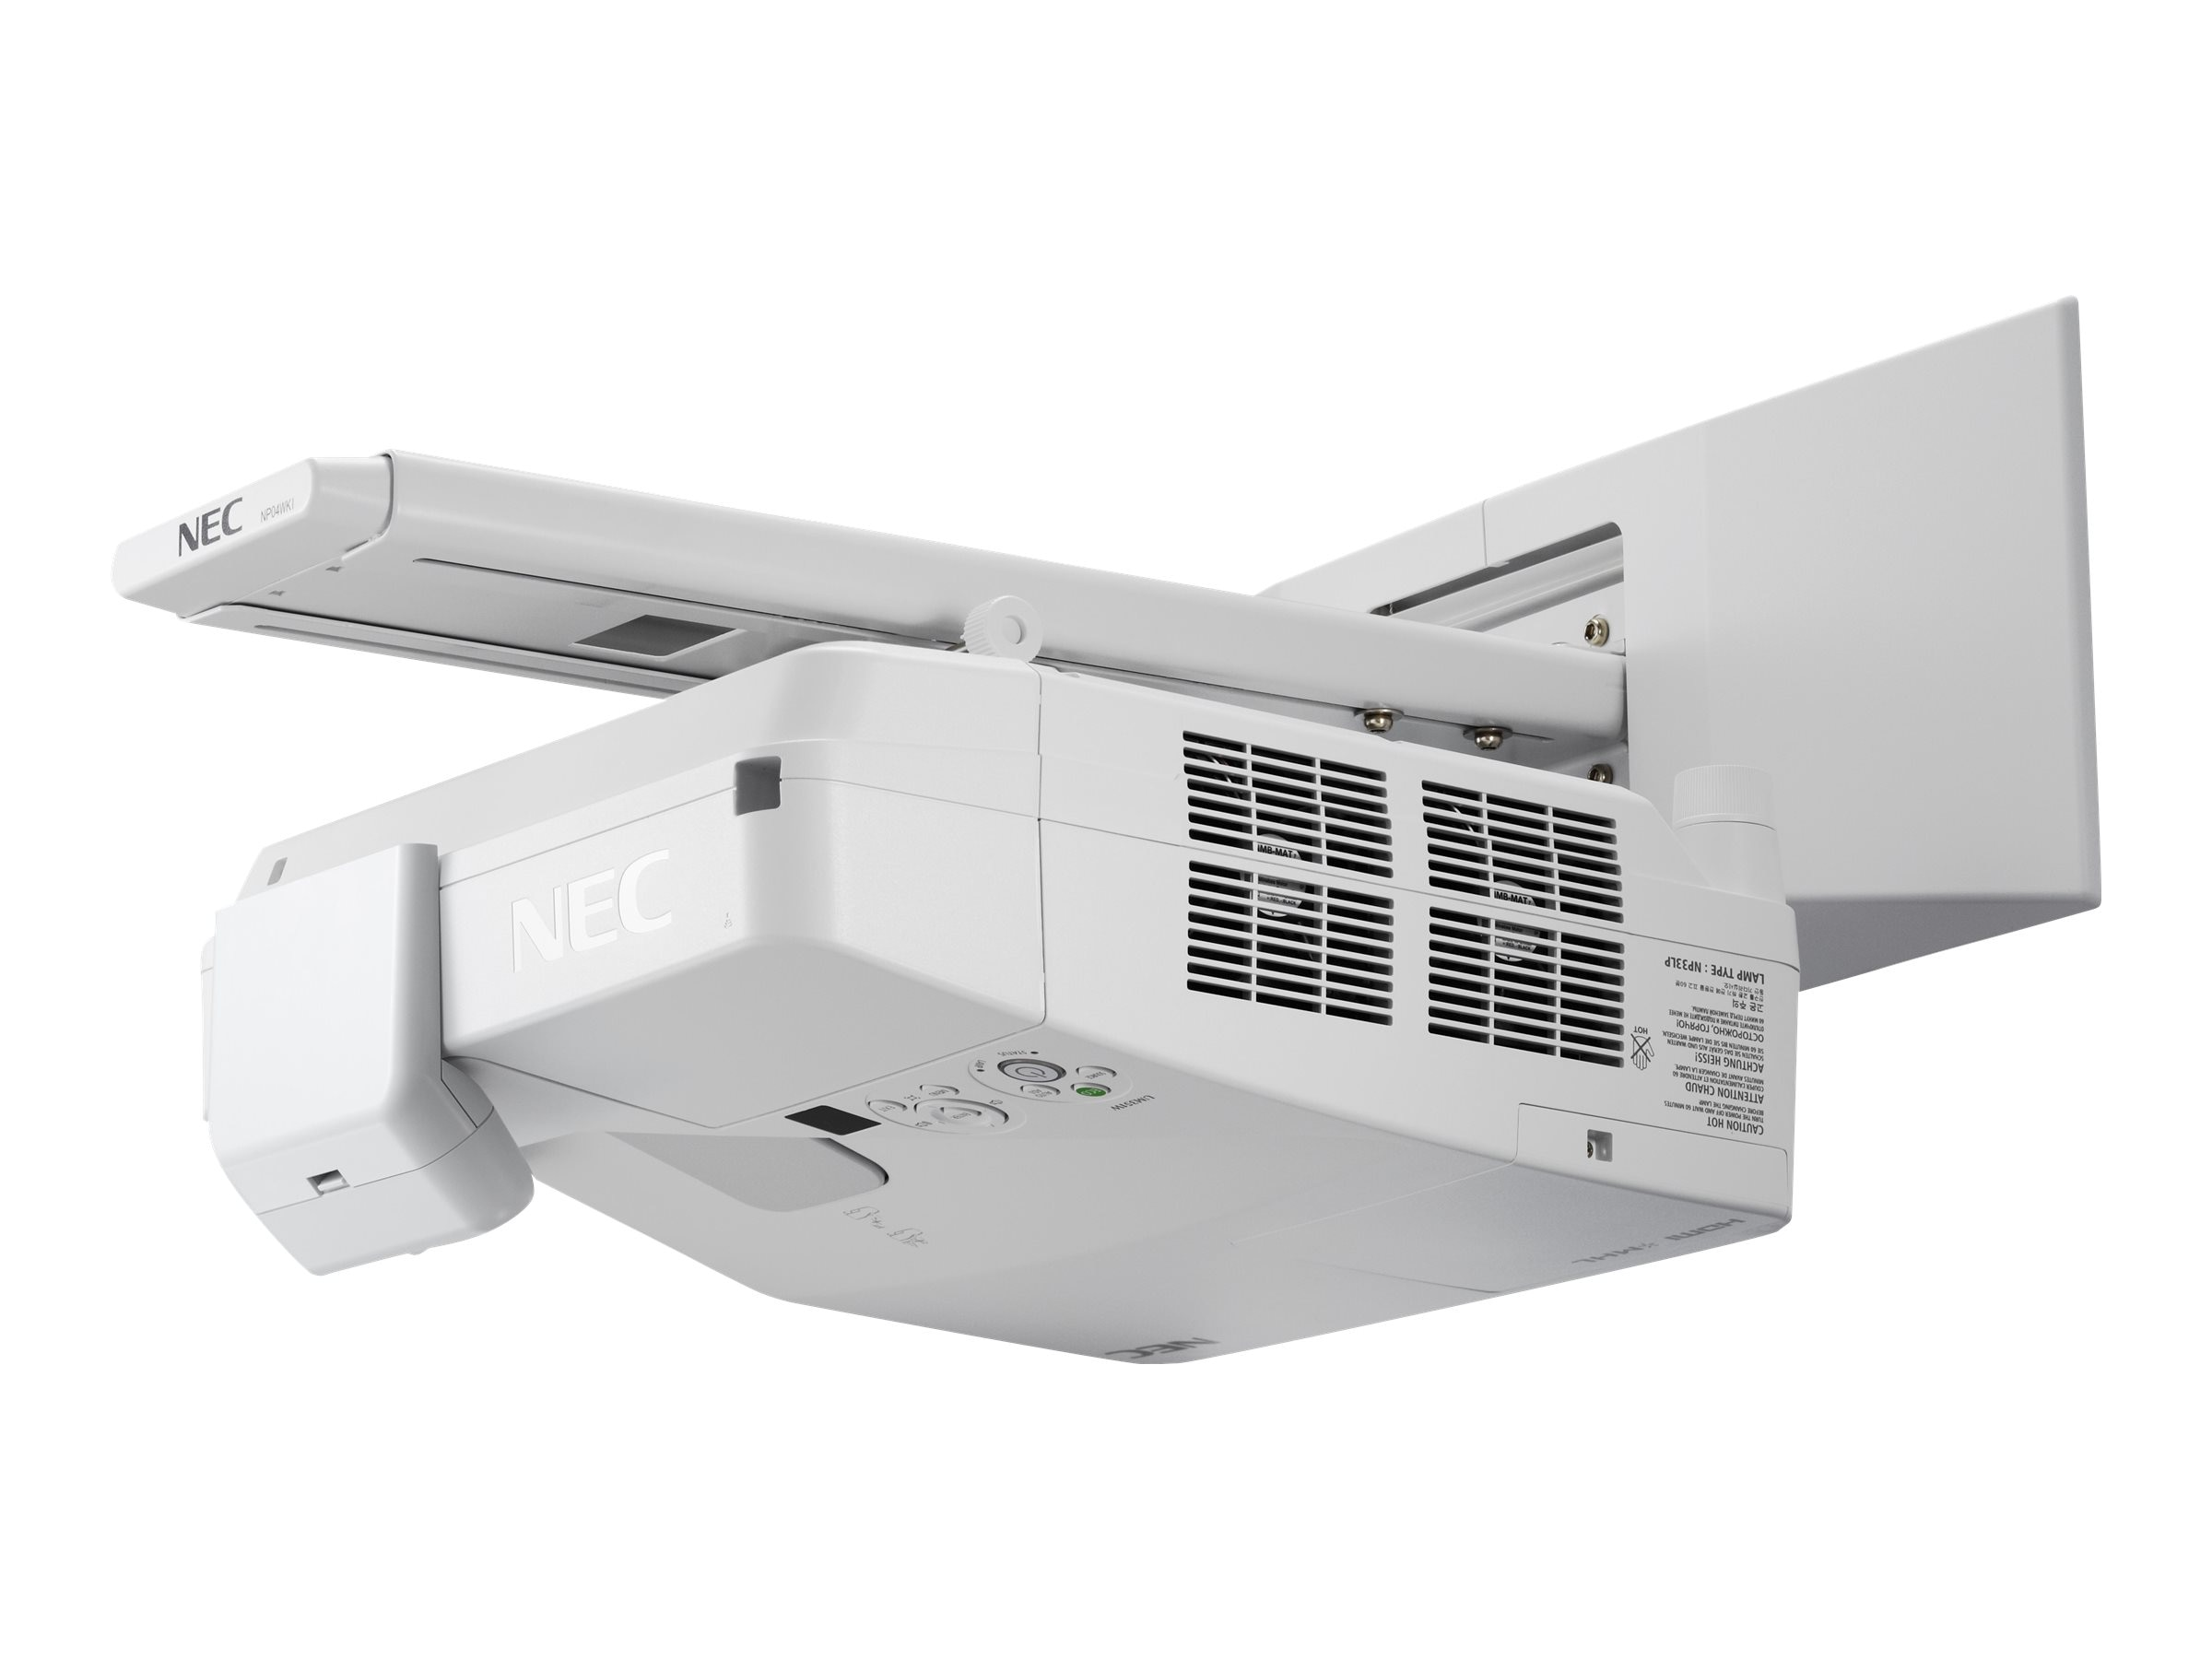 NEC UM361X Ultra Short Throw LCD Projector, 3600 Lumens, White with Wall Mount